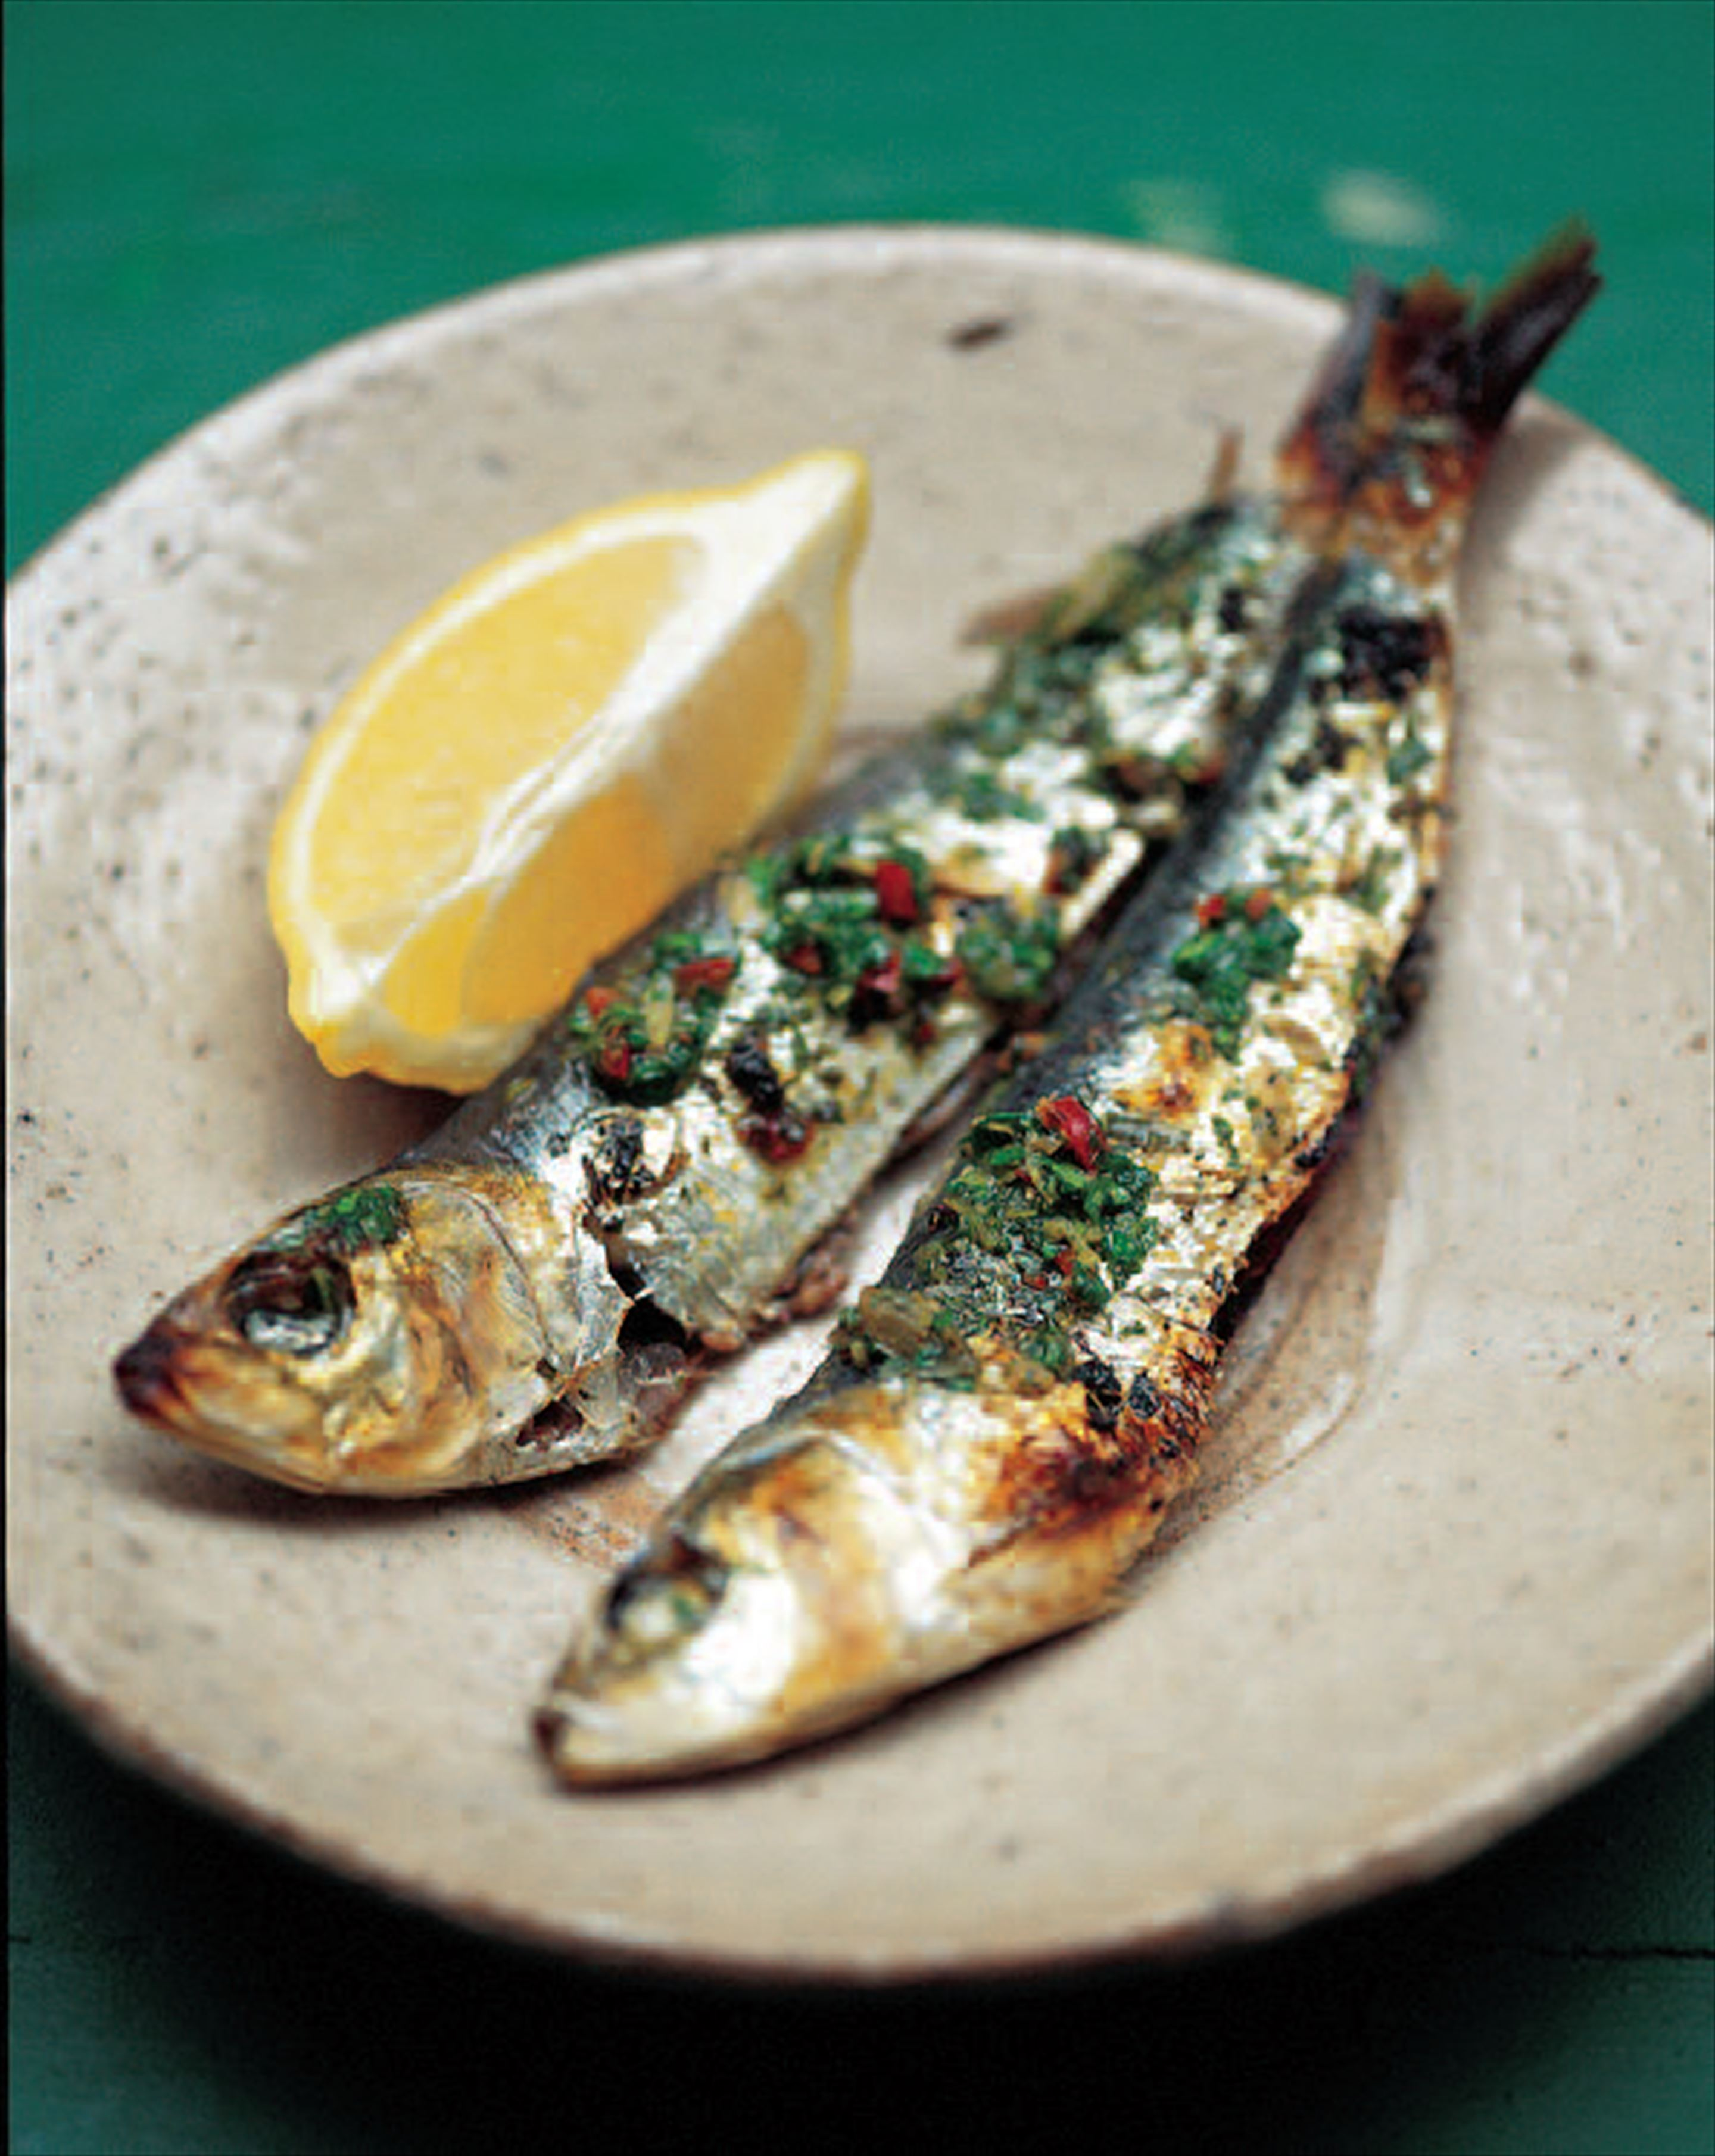 Grilled fresh sardines with green salsa